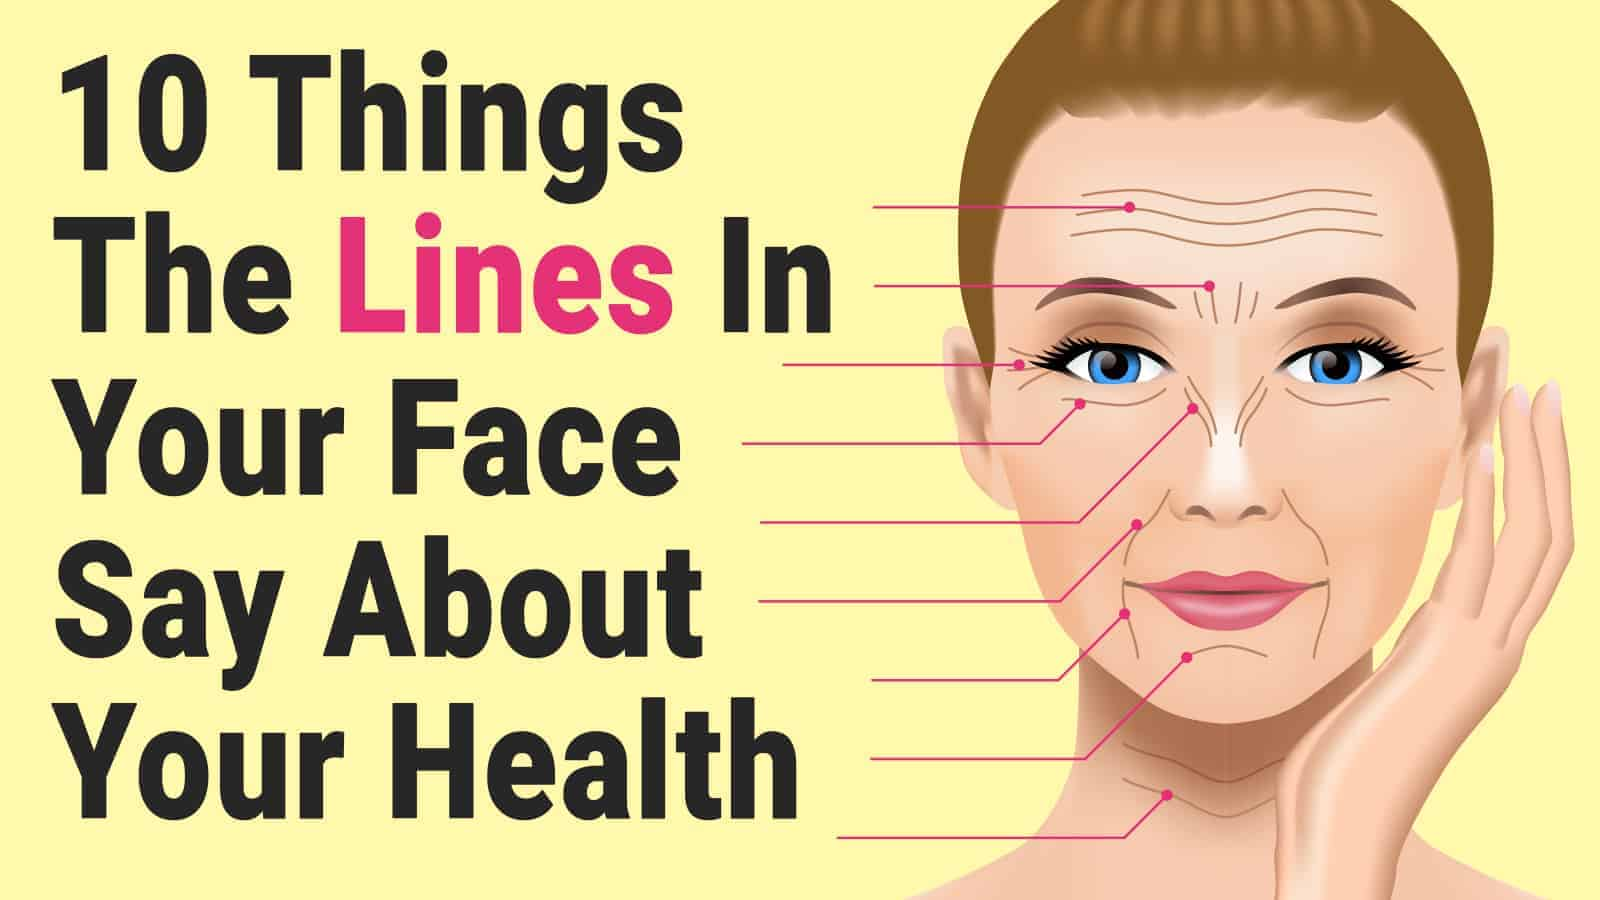 10 things the lines in your face say about your health